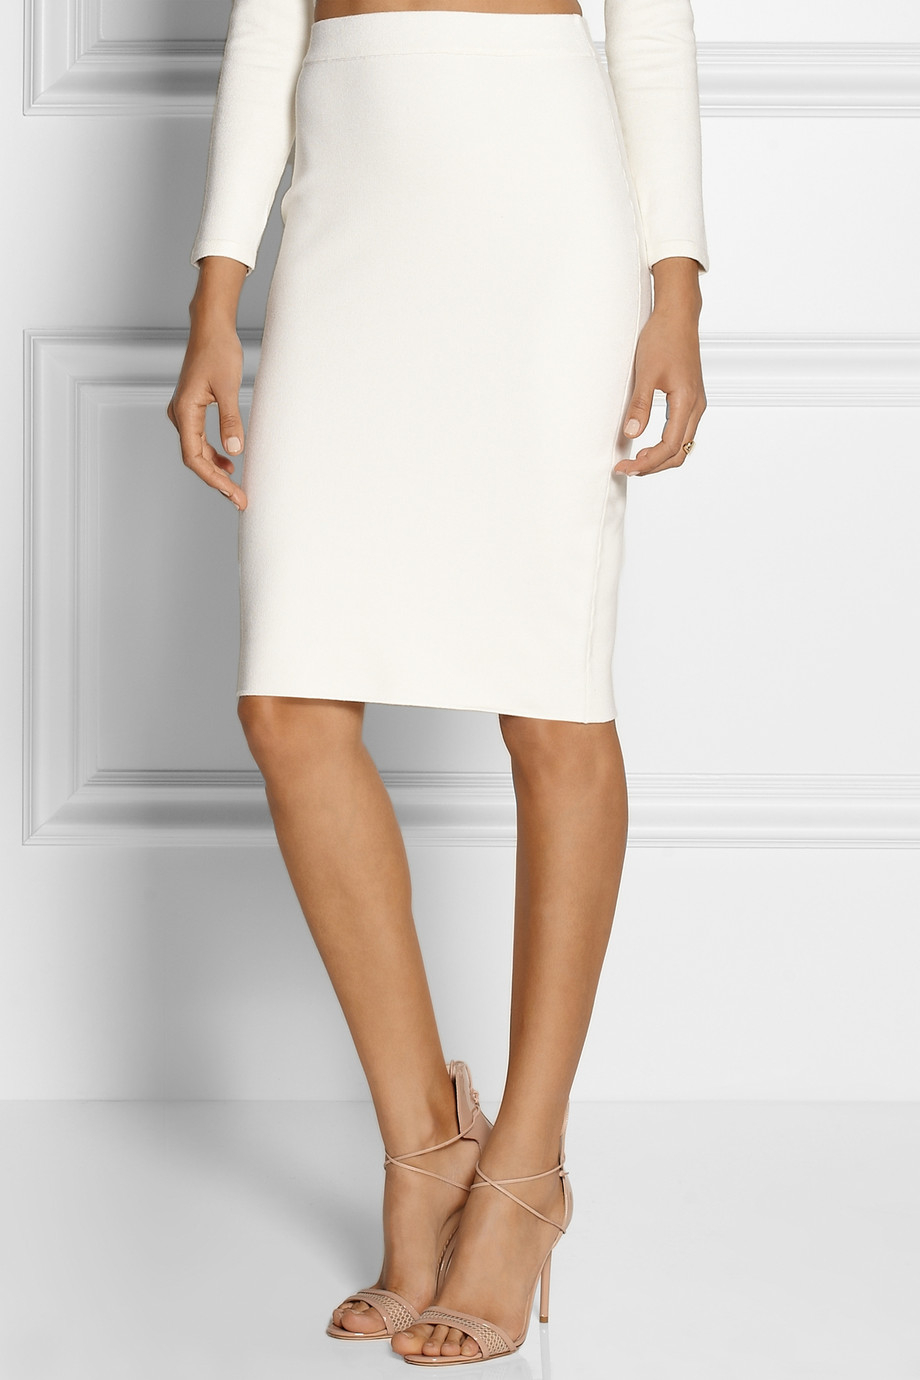 Jonathan simkhai Stretch-Knit Pencil Skirt in White | Lyst